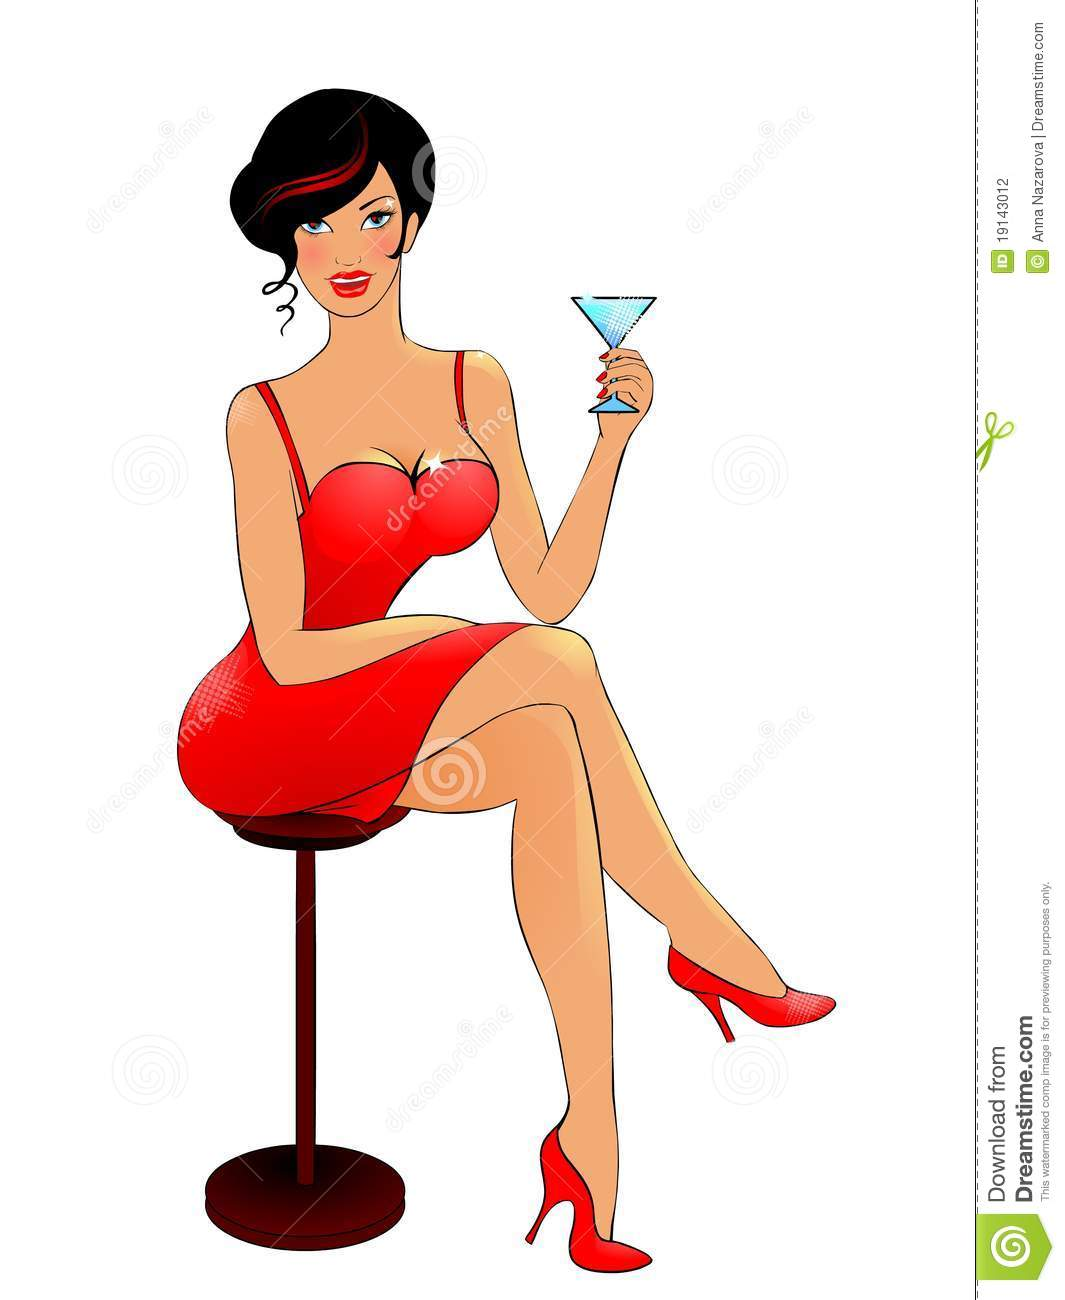 flirting signs of married women images clip art girls pictures